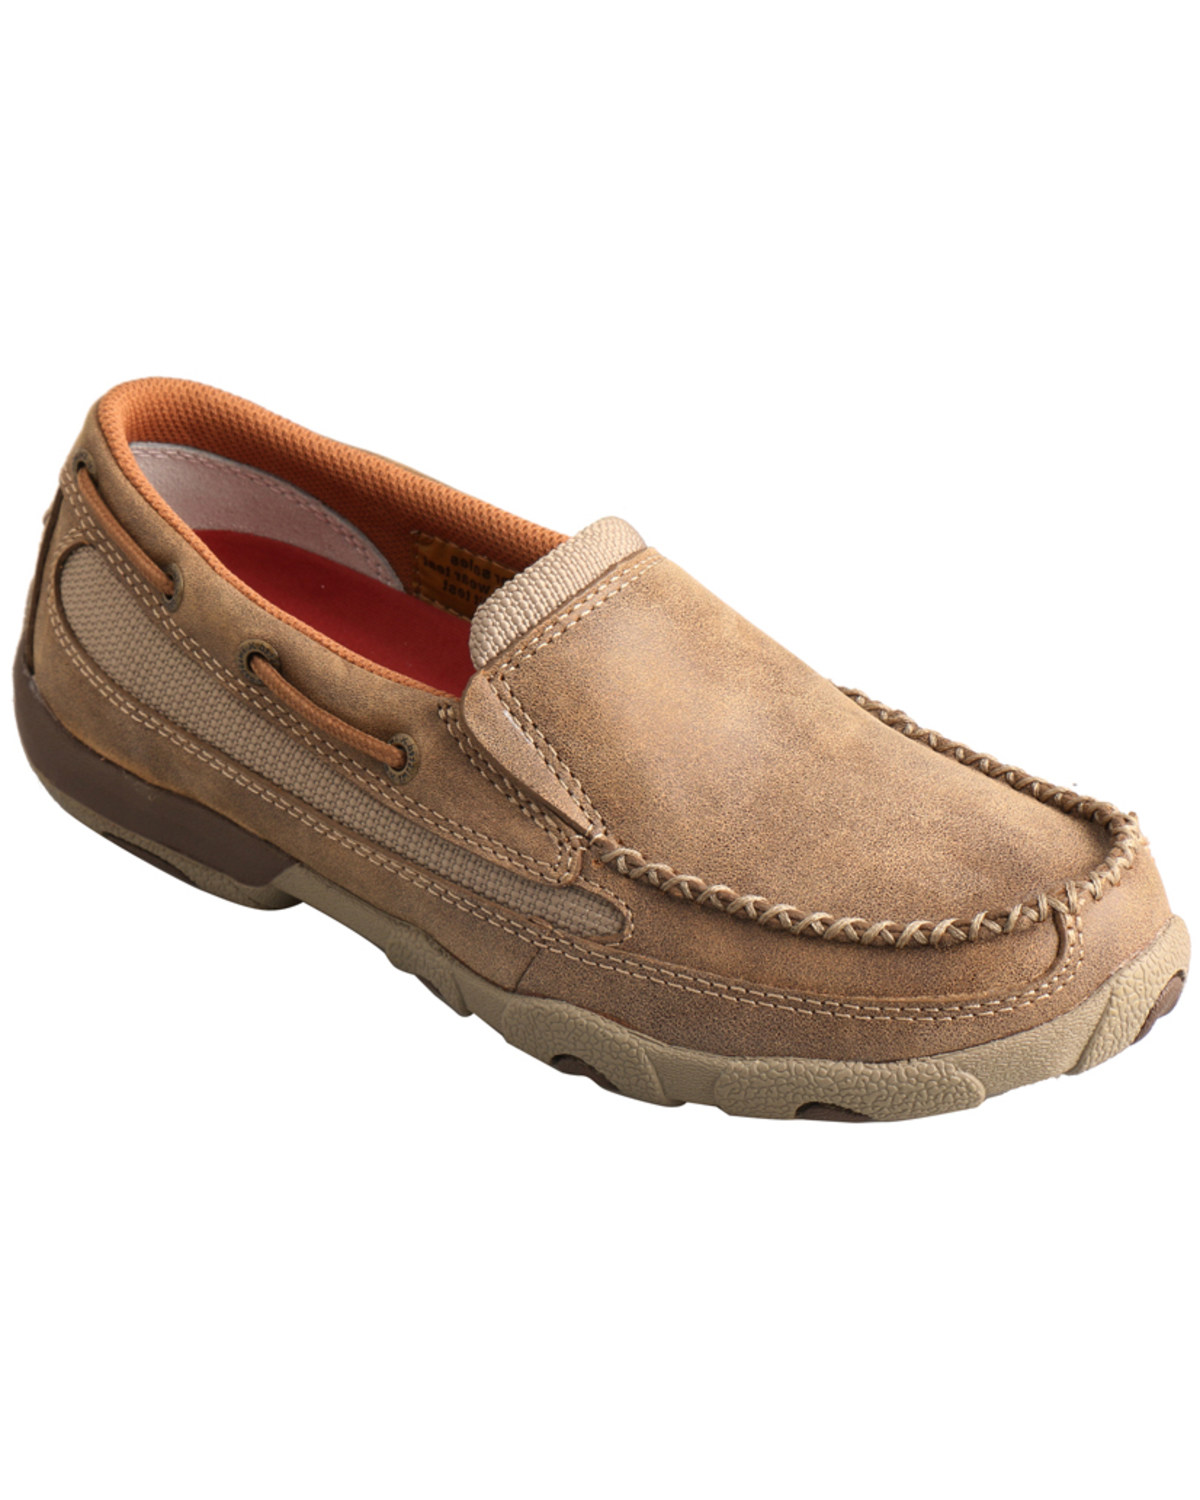 8bcf44988bb Twisted X Women s Leather Driving Moccasins